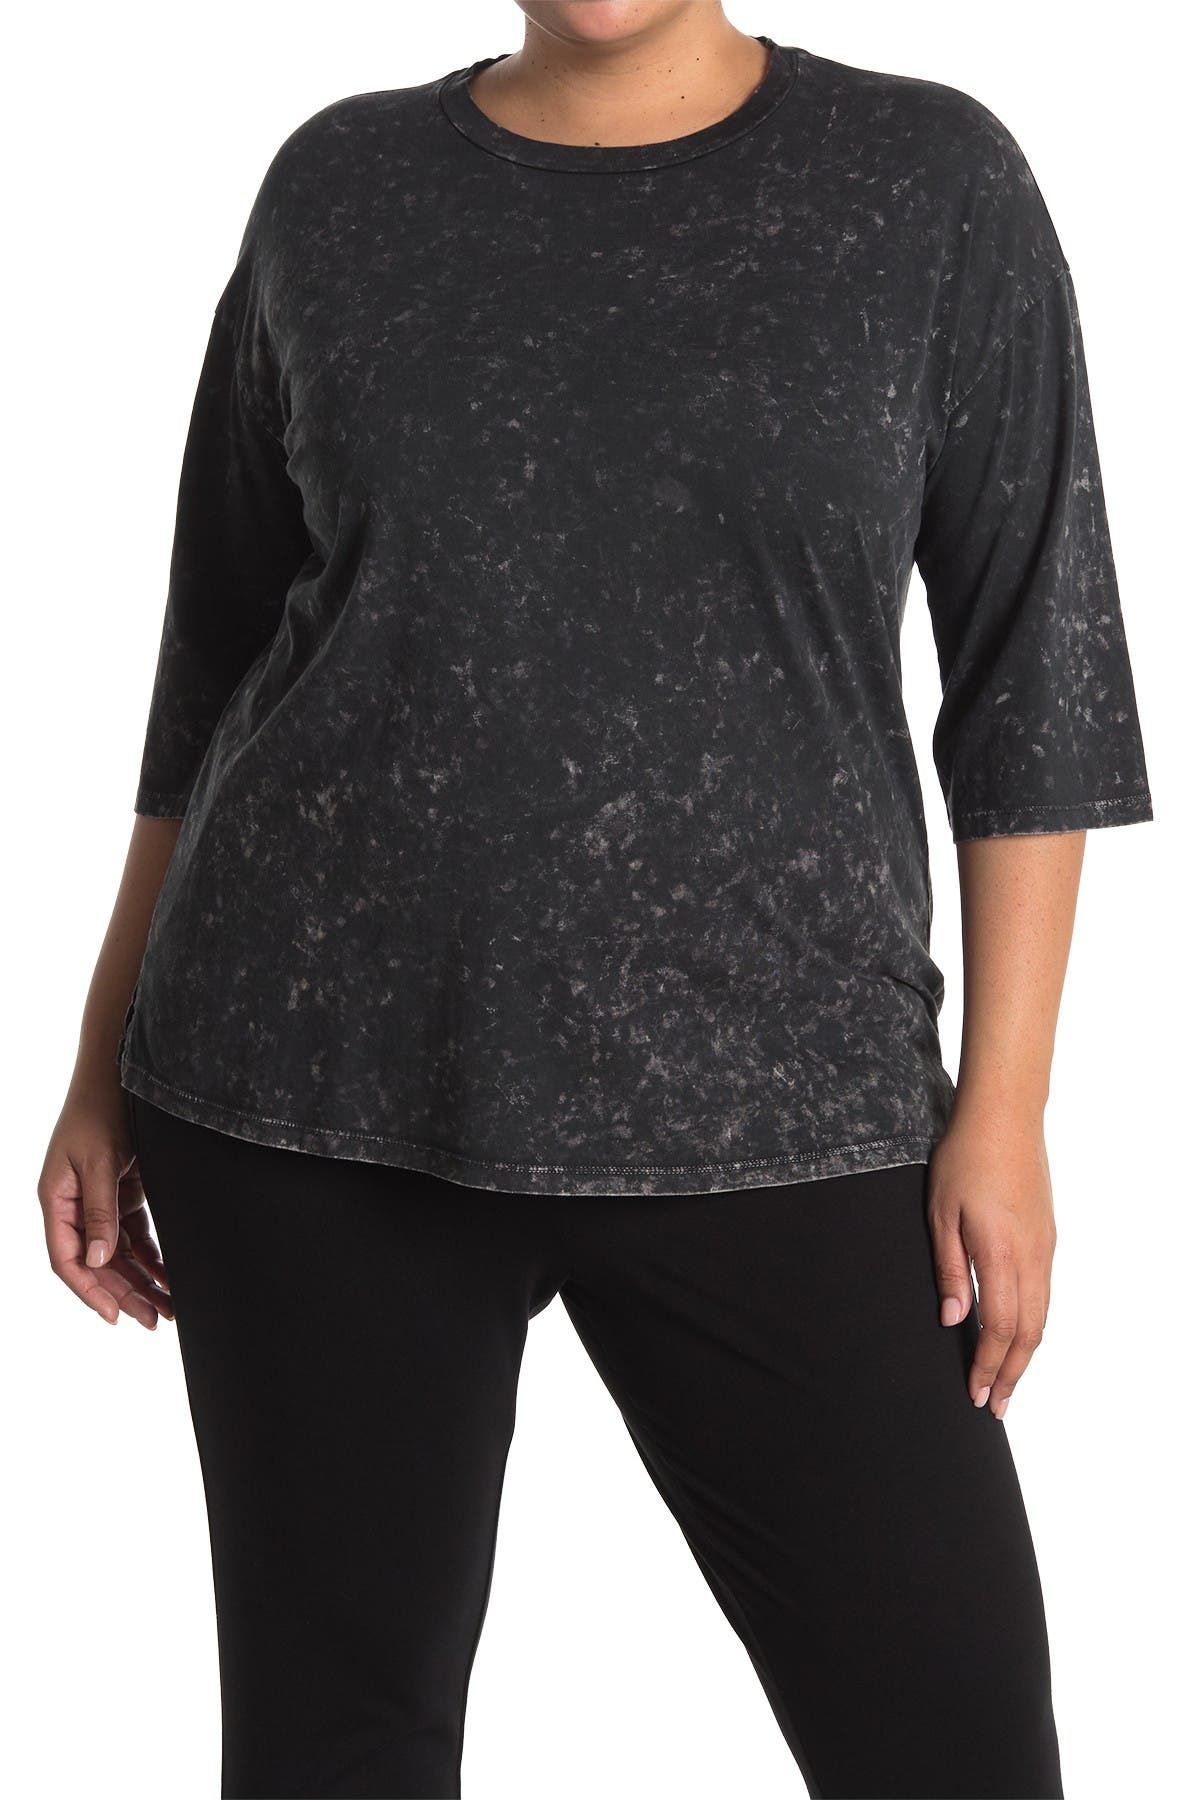 Image of VERO MODA 3/4 Sleeve T-Shirt